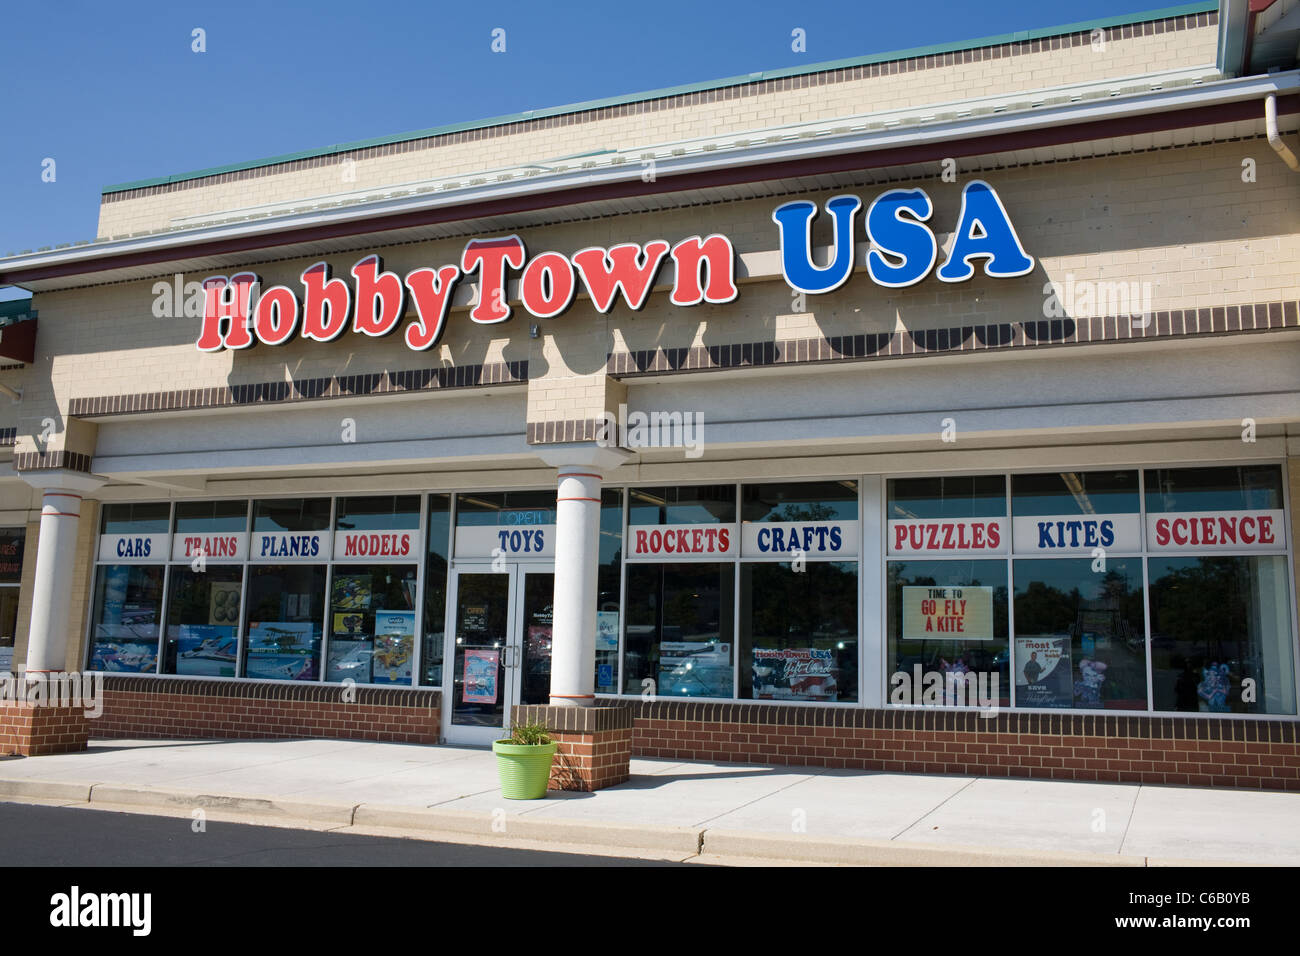 Hobby Shops Stock Photos & Hobby Shops Stock Images - Alamy